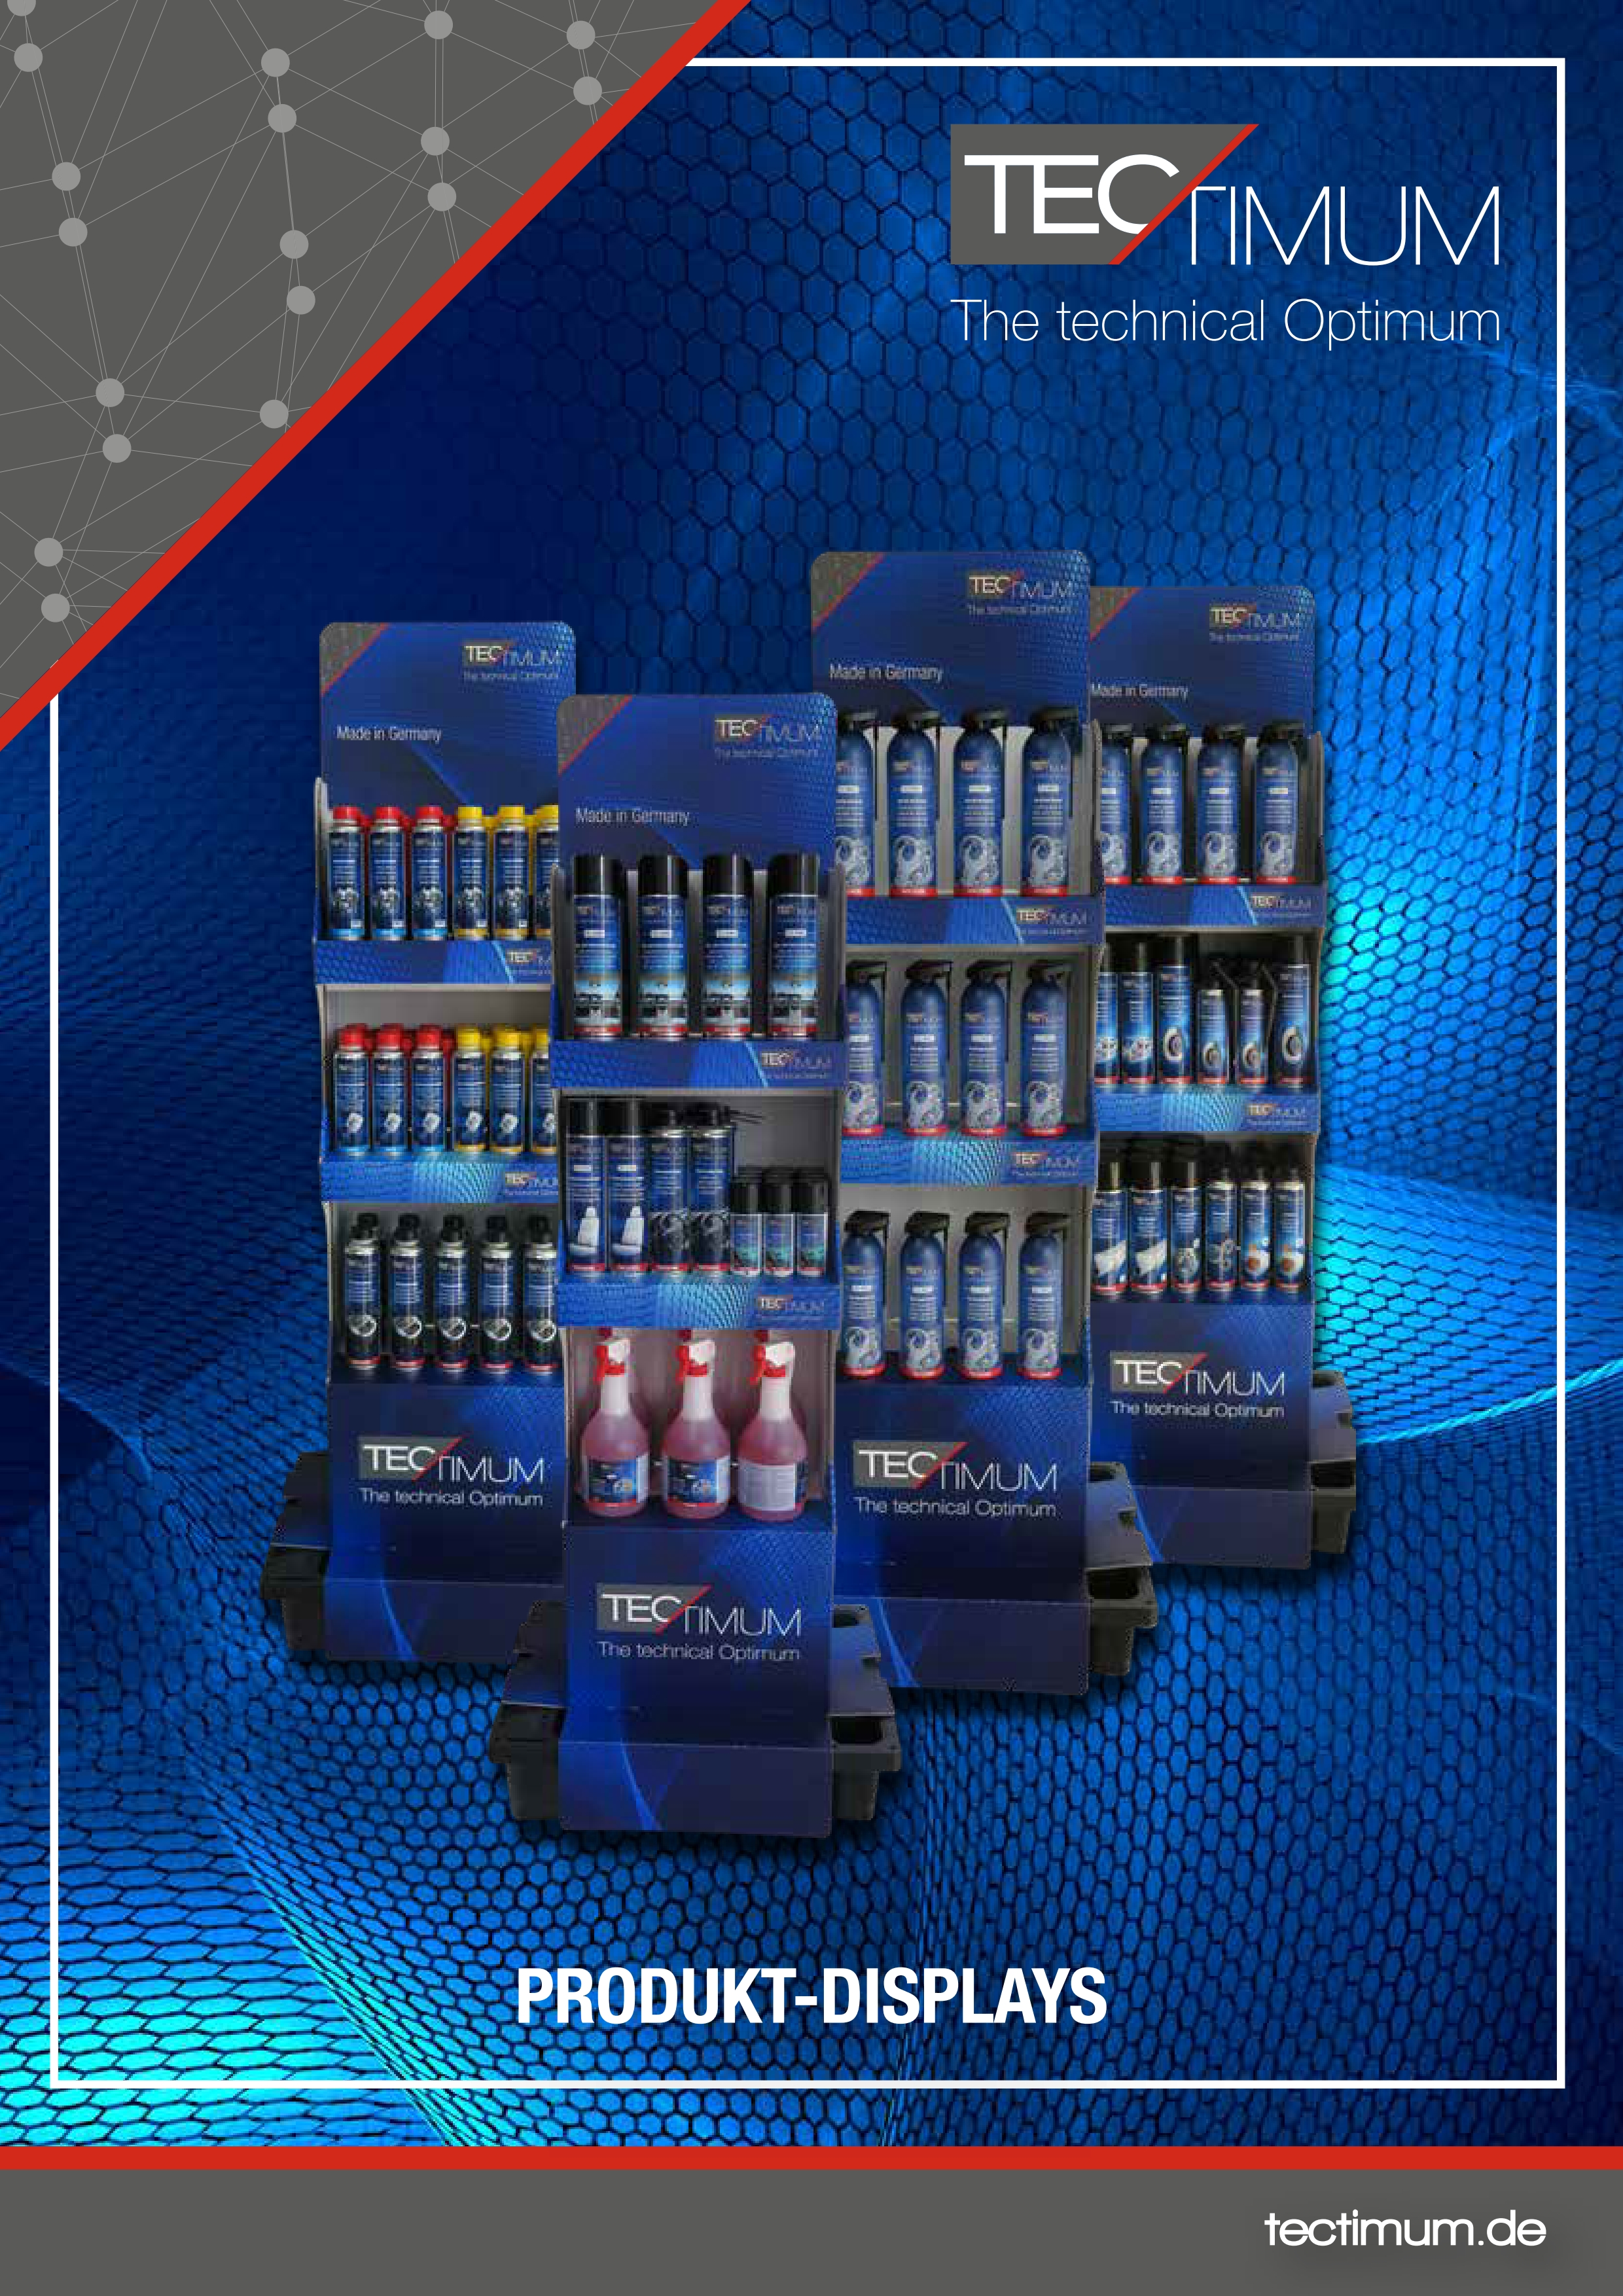 Tectimum Produkt-Displays